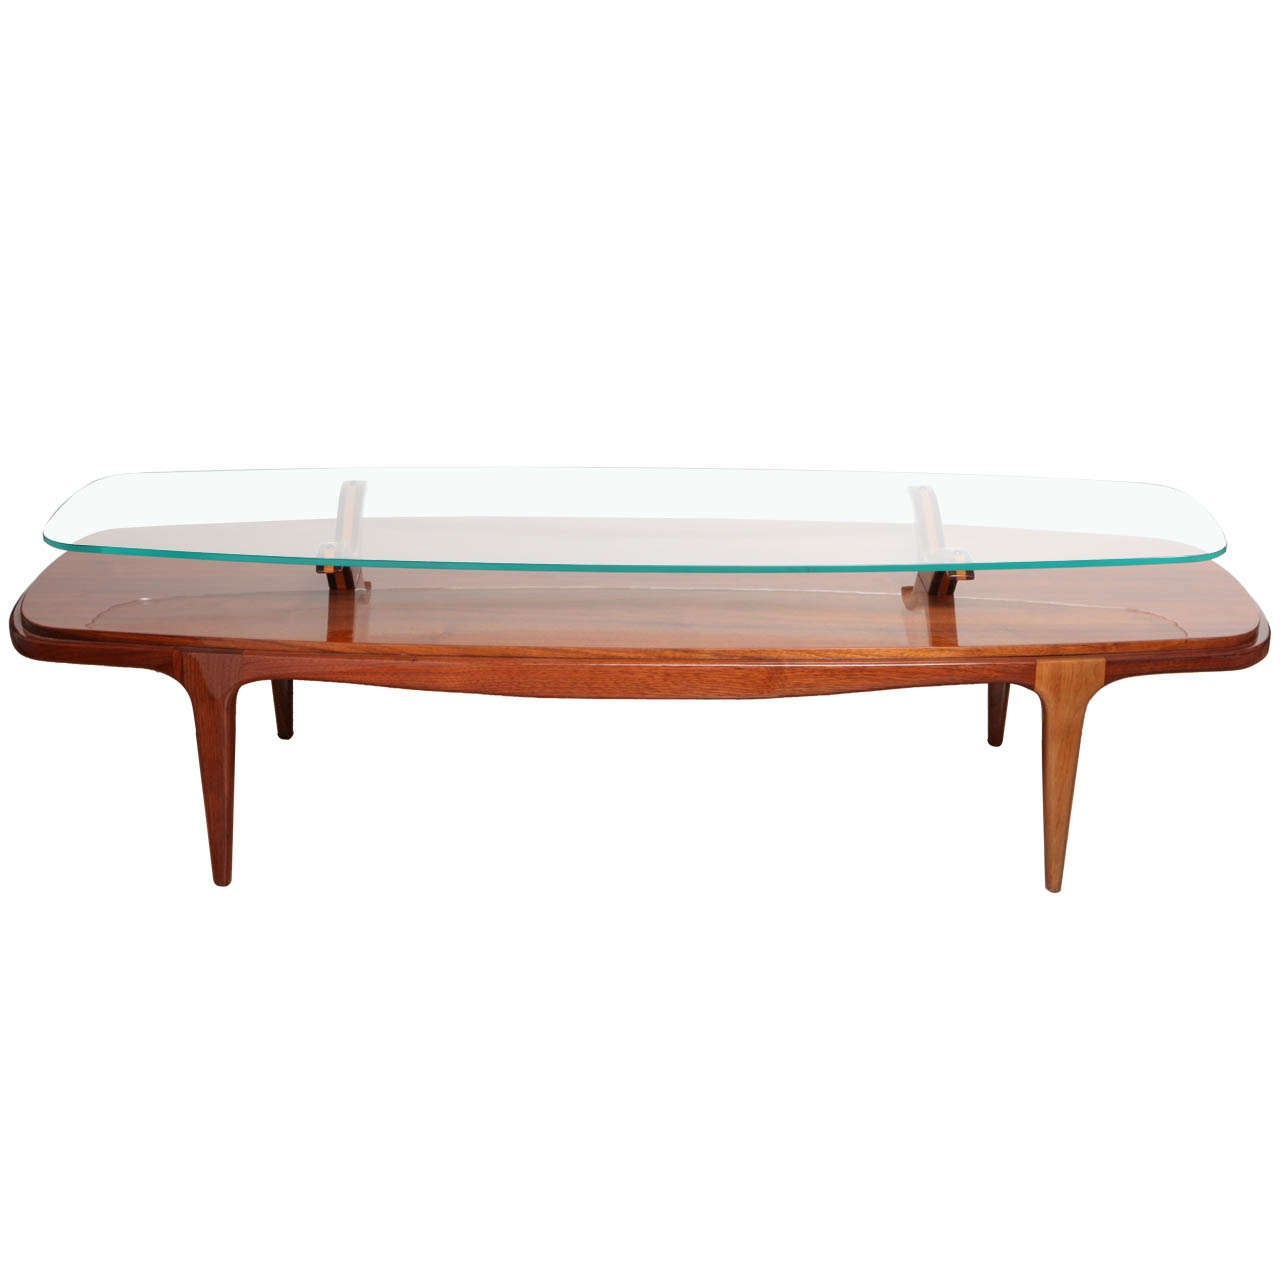 Midcentury Surfboard Cocktail Table At 1stdibs